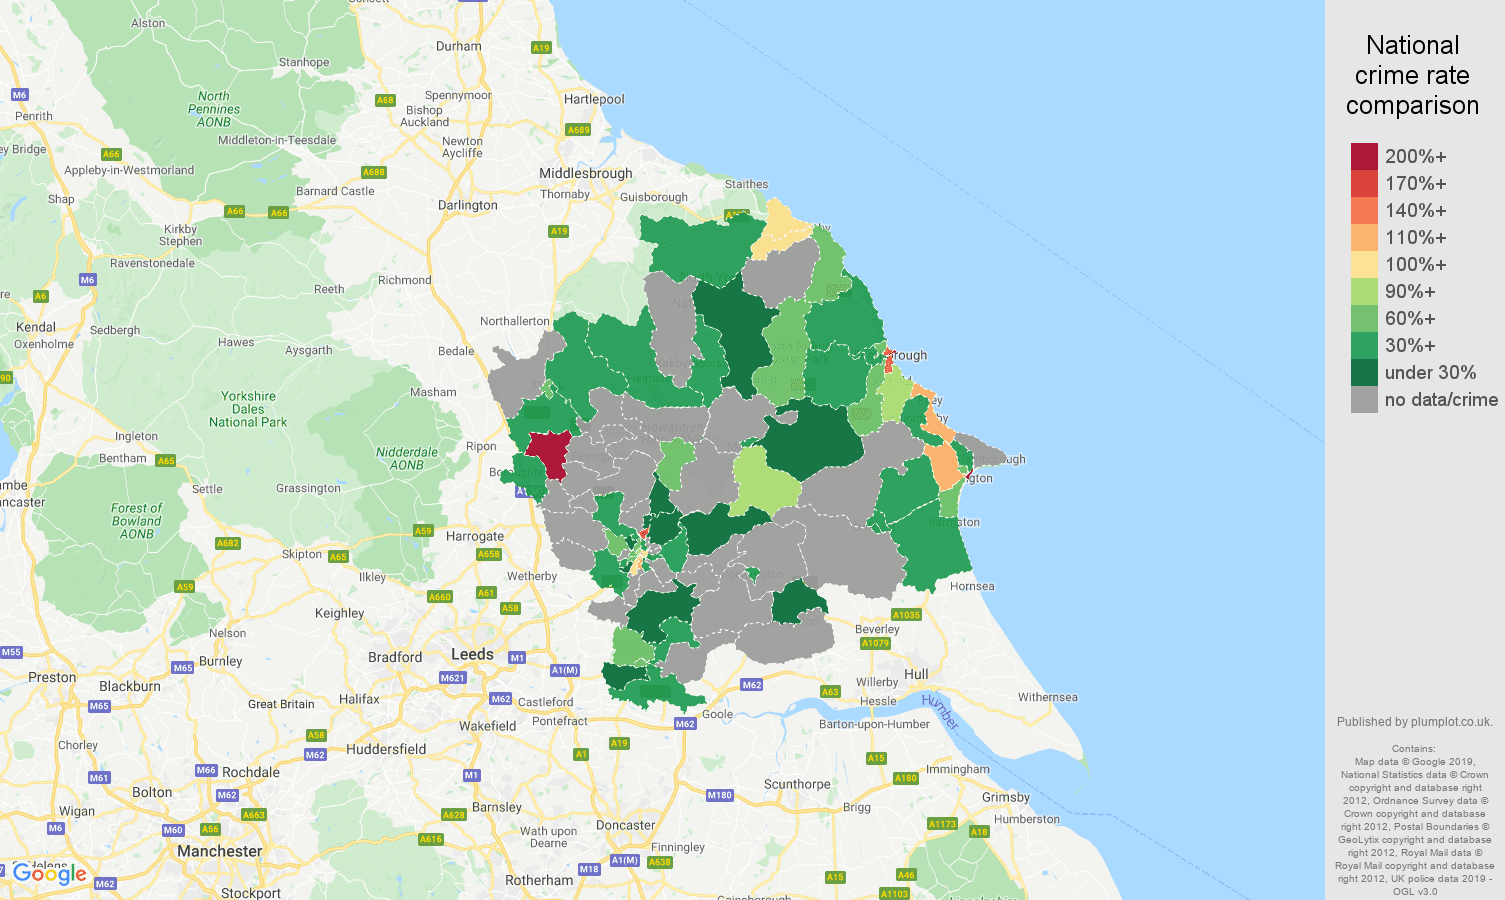 York possession of weapons crime rate comparison map